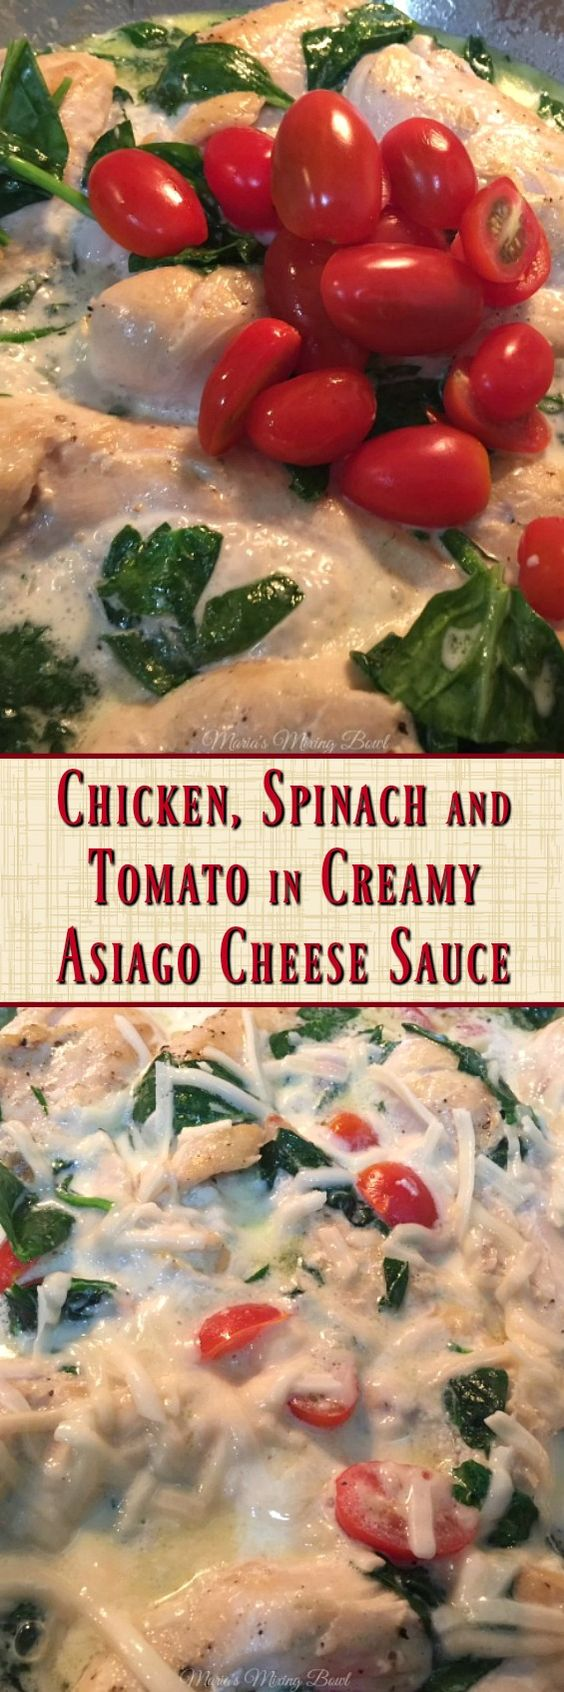 Chicken, Spinach and Tomato in Creamy Asiago Cheese Sauce - A quick and so delicious chicken dish in a creamy asiago cream sauce. Keto, low carb friendly!  This is a favorite weeknight dish!